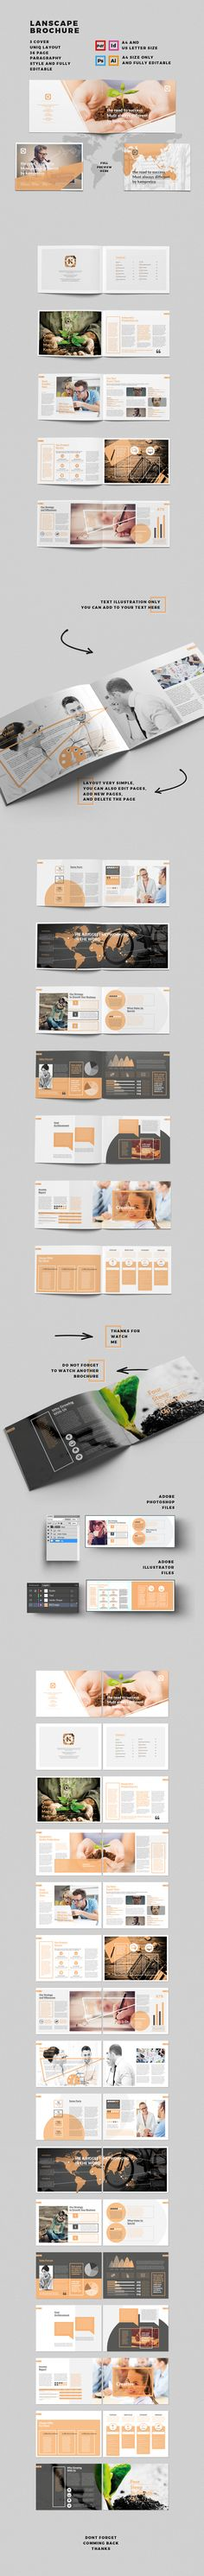 "Check out this @Behance project: ""Report Brochure"" https://www.behance.net/gallery/42124007/Report-Brochure"